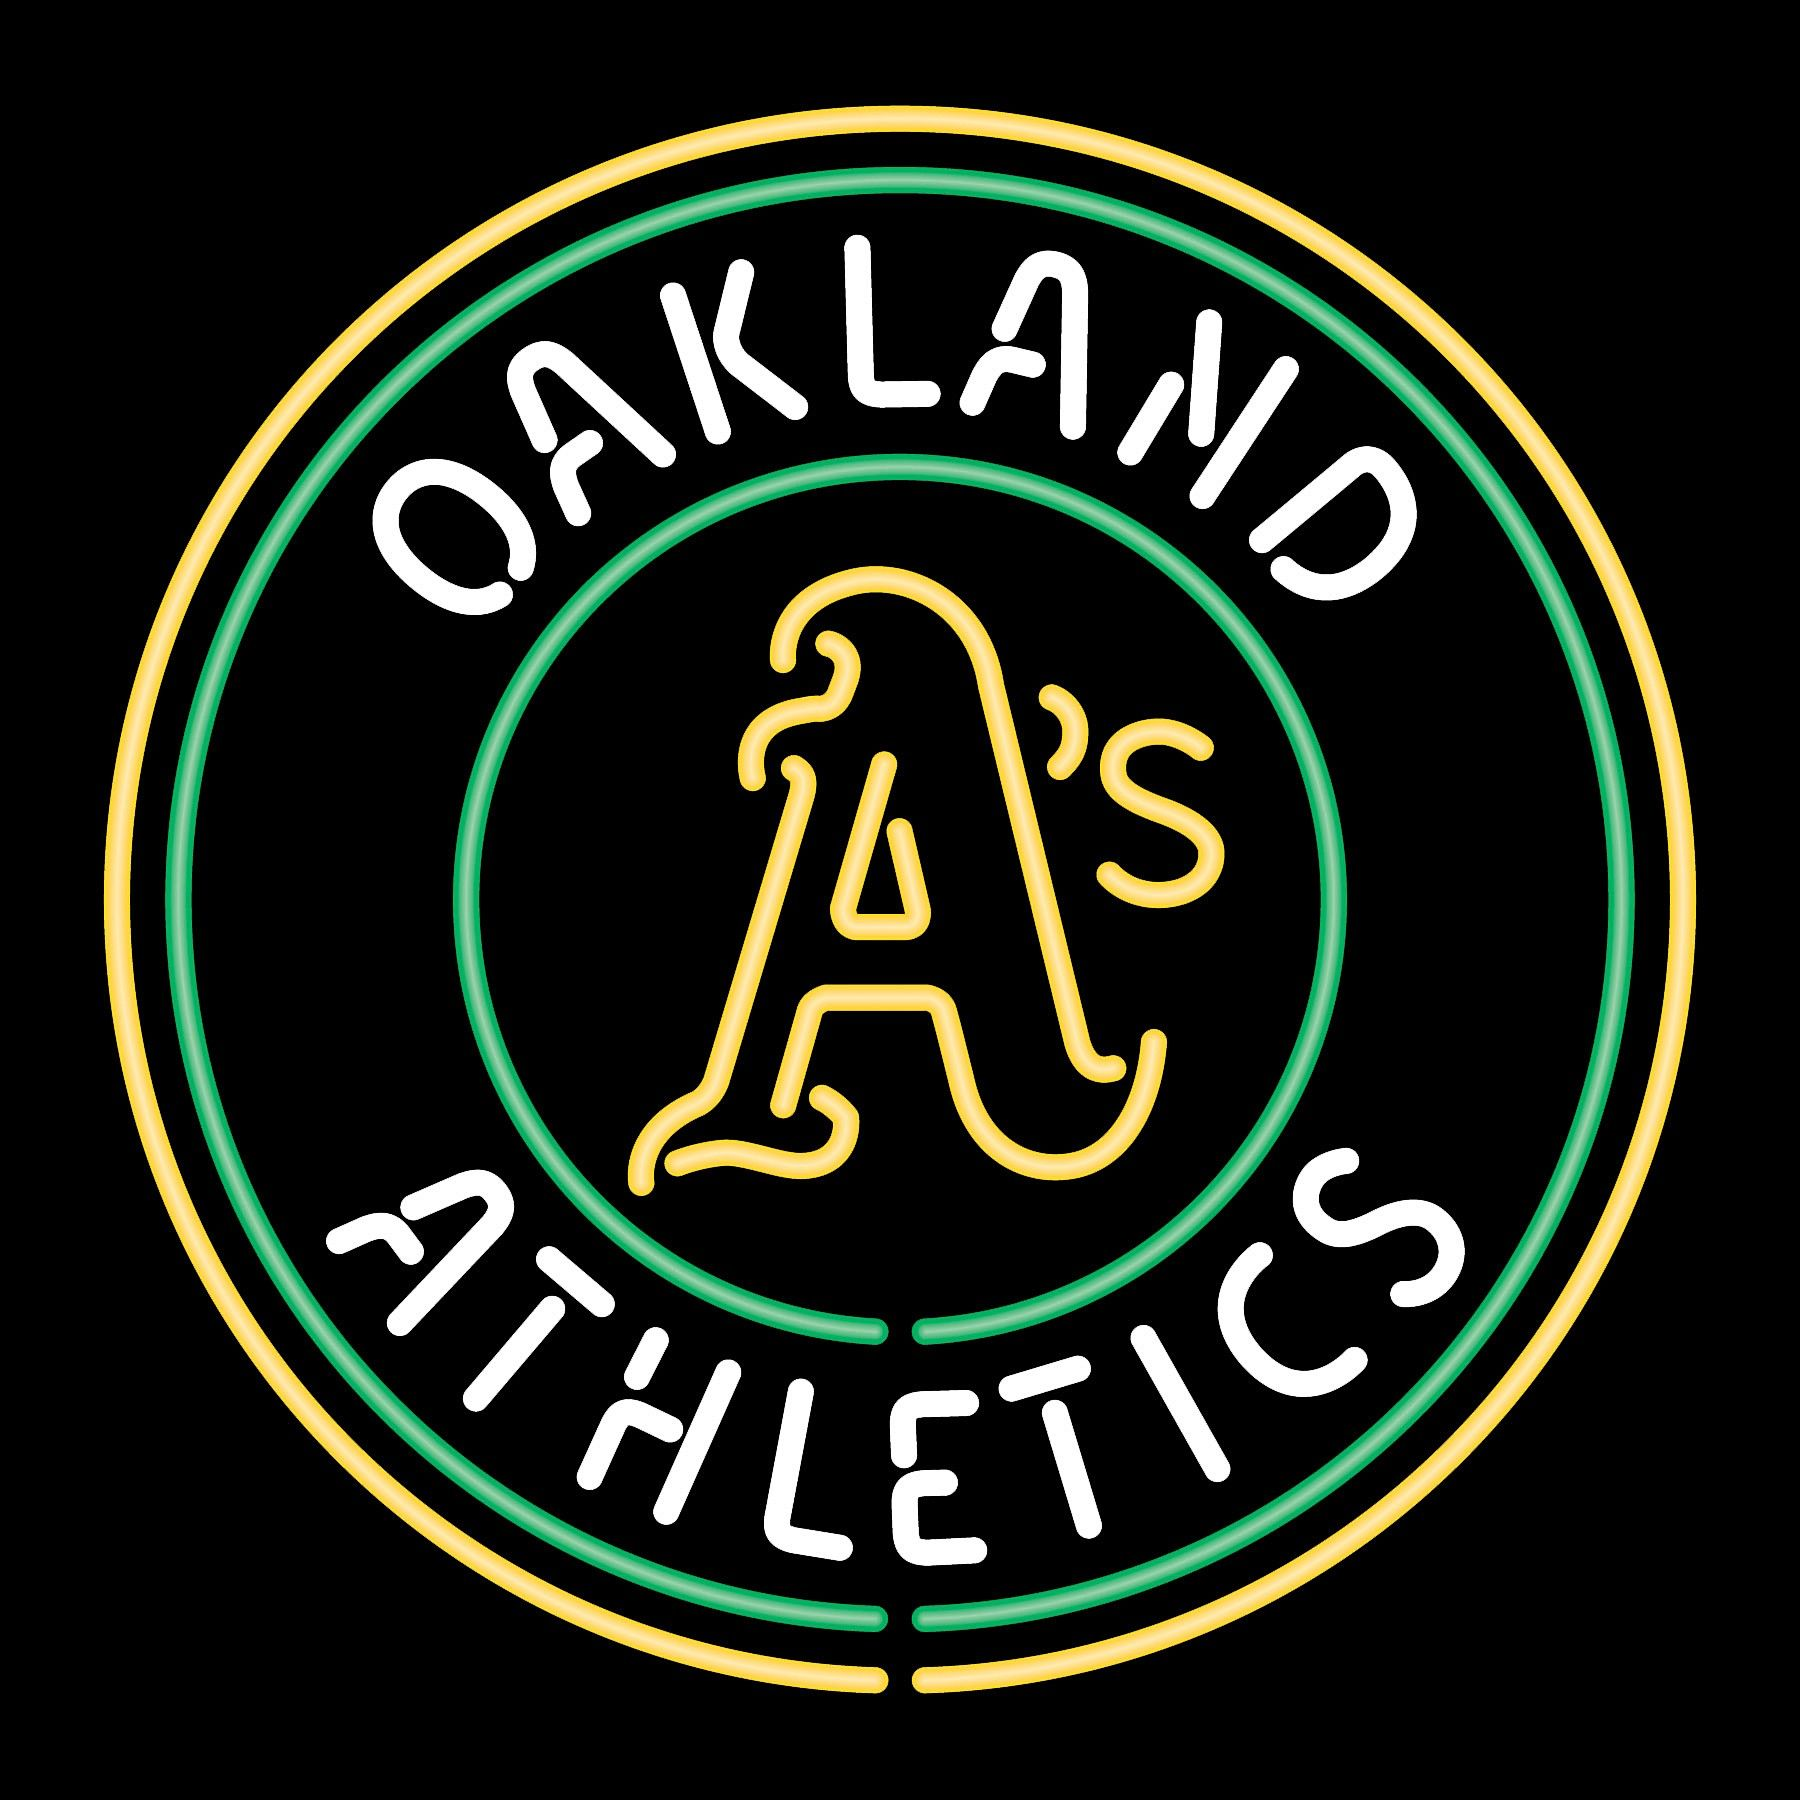 Image Detail For Oakland Athletics Neon Sign Mancavegoodies Com Neon Signs Neon Beer Signs Oakland Athletics